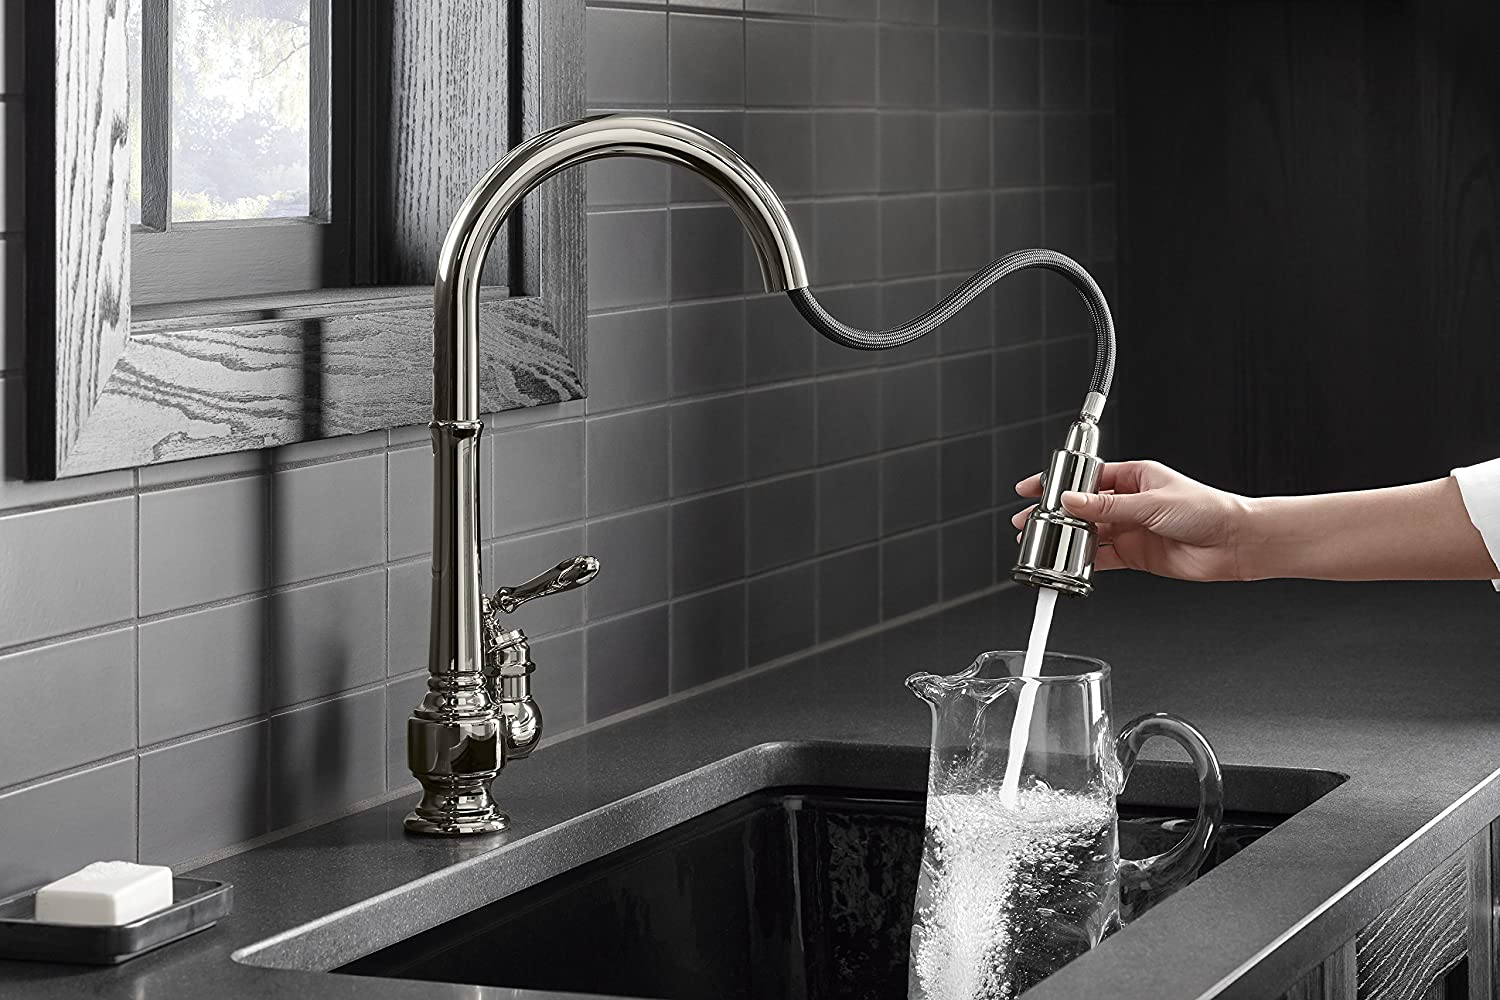 Kohler K-99260-VS Artifacts Single-Hole Kitchen Sink Faucet with 17 ...